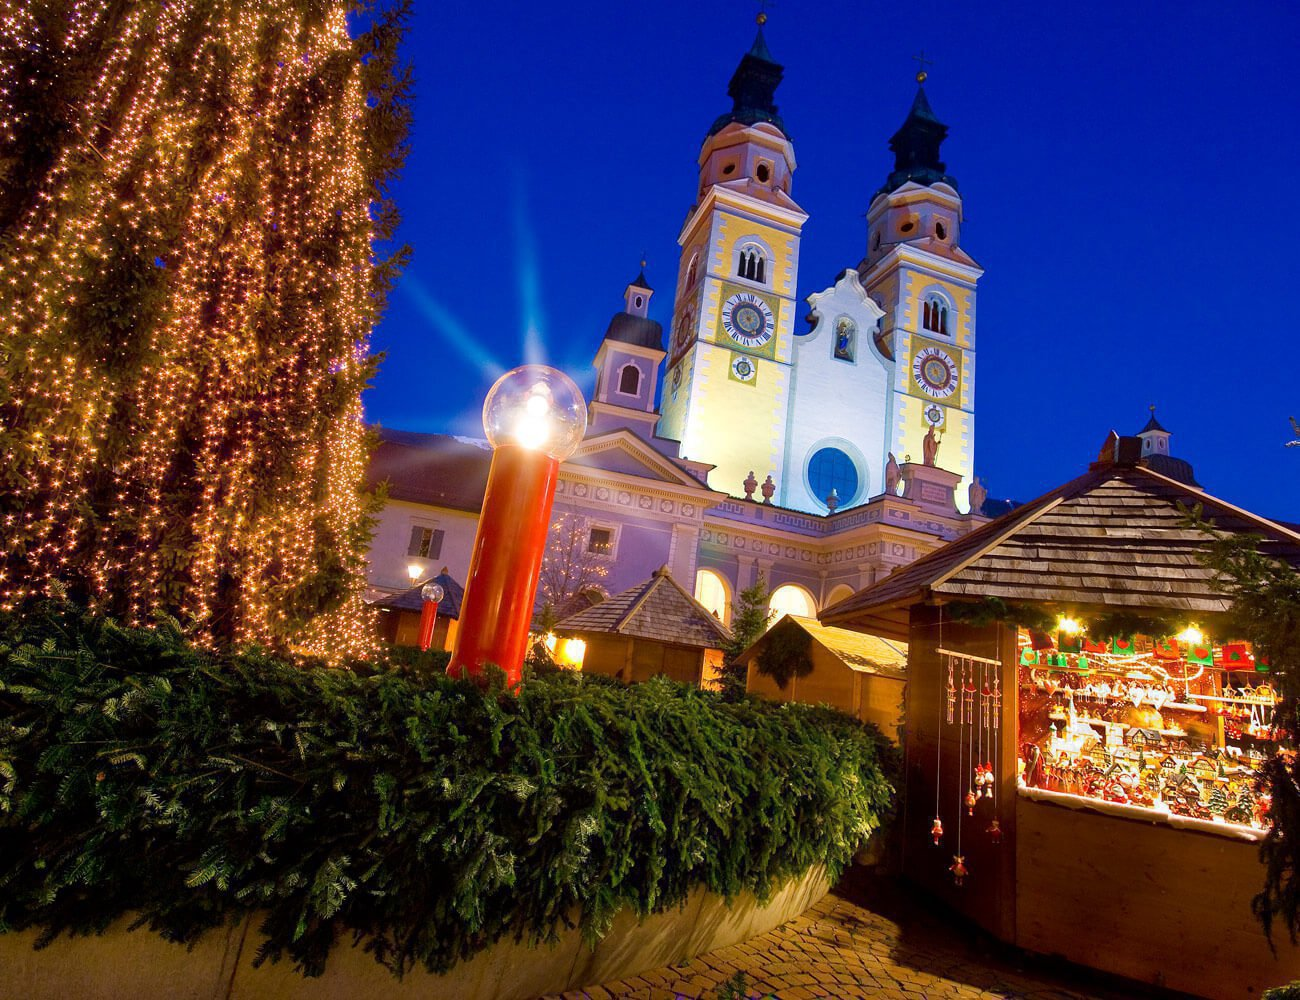 Christmas Market Bressanone - Traditional Christmas Market in South Tyrol